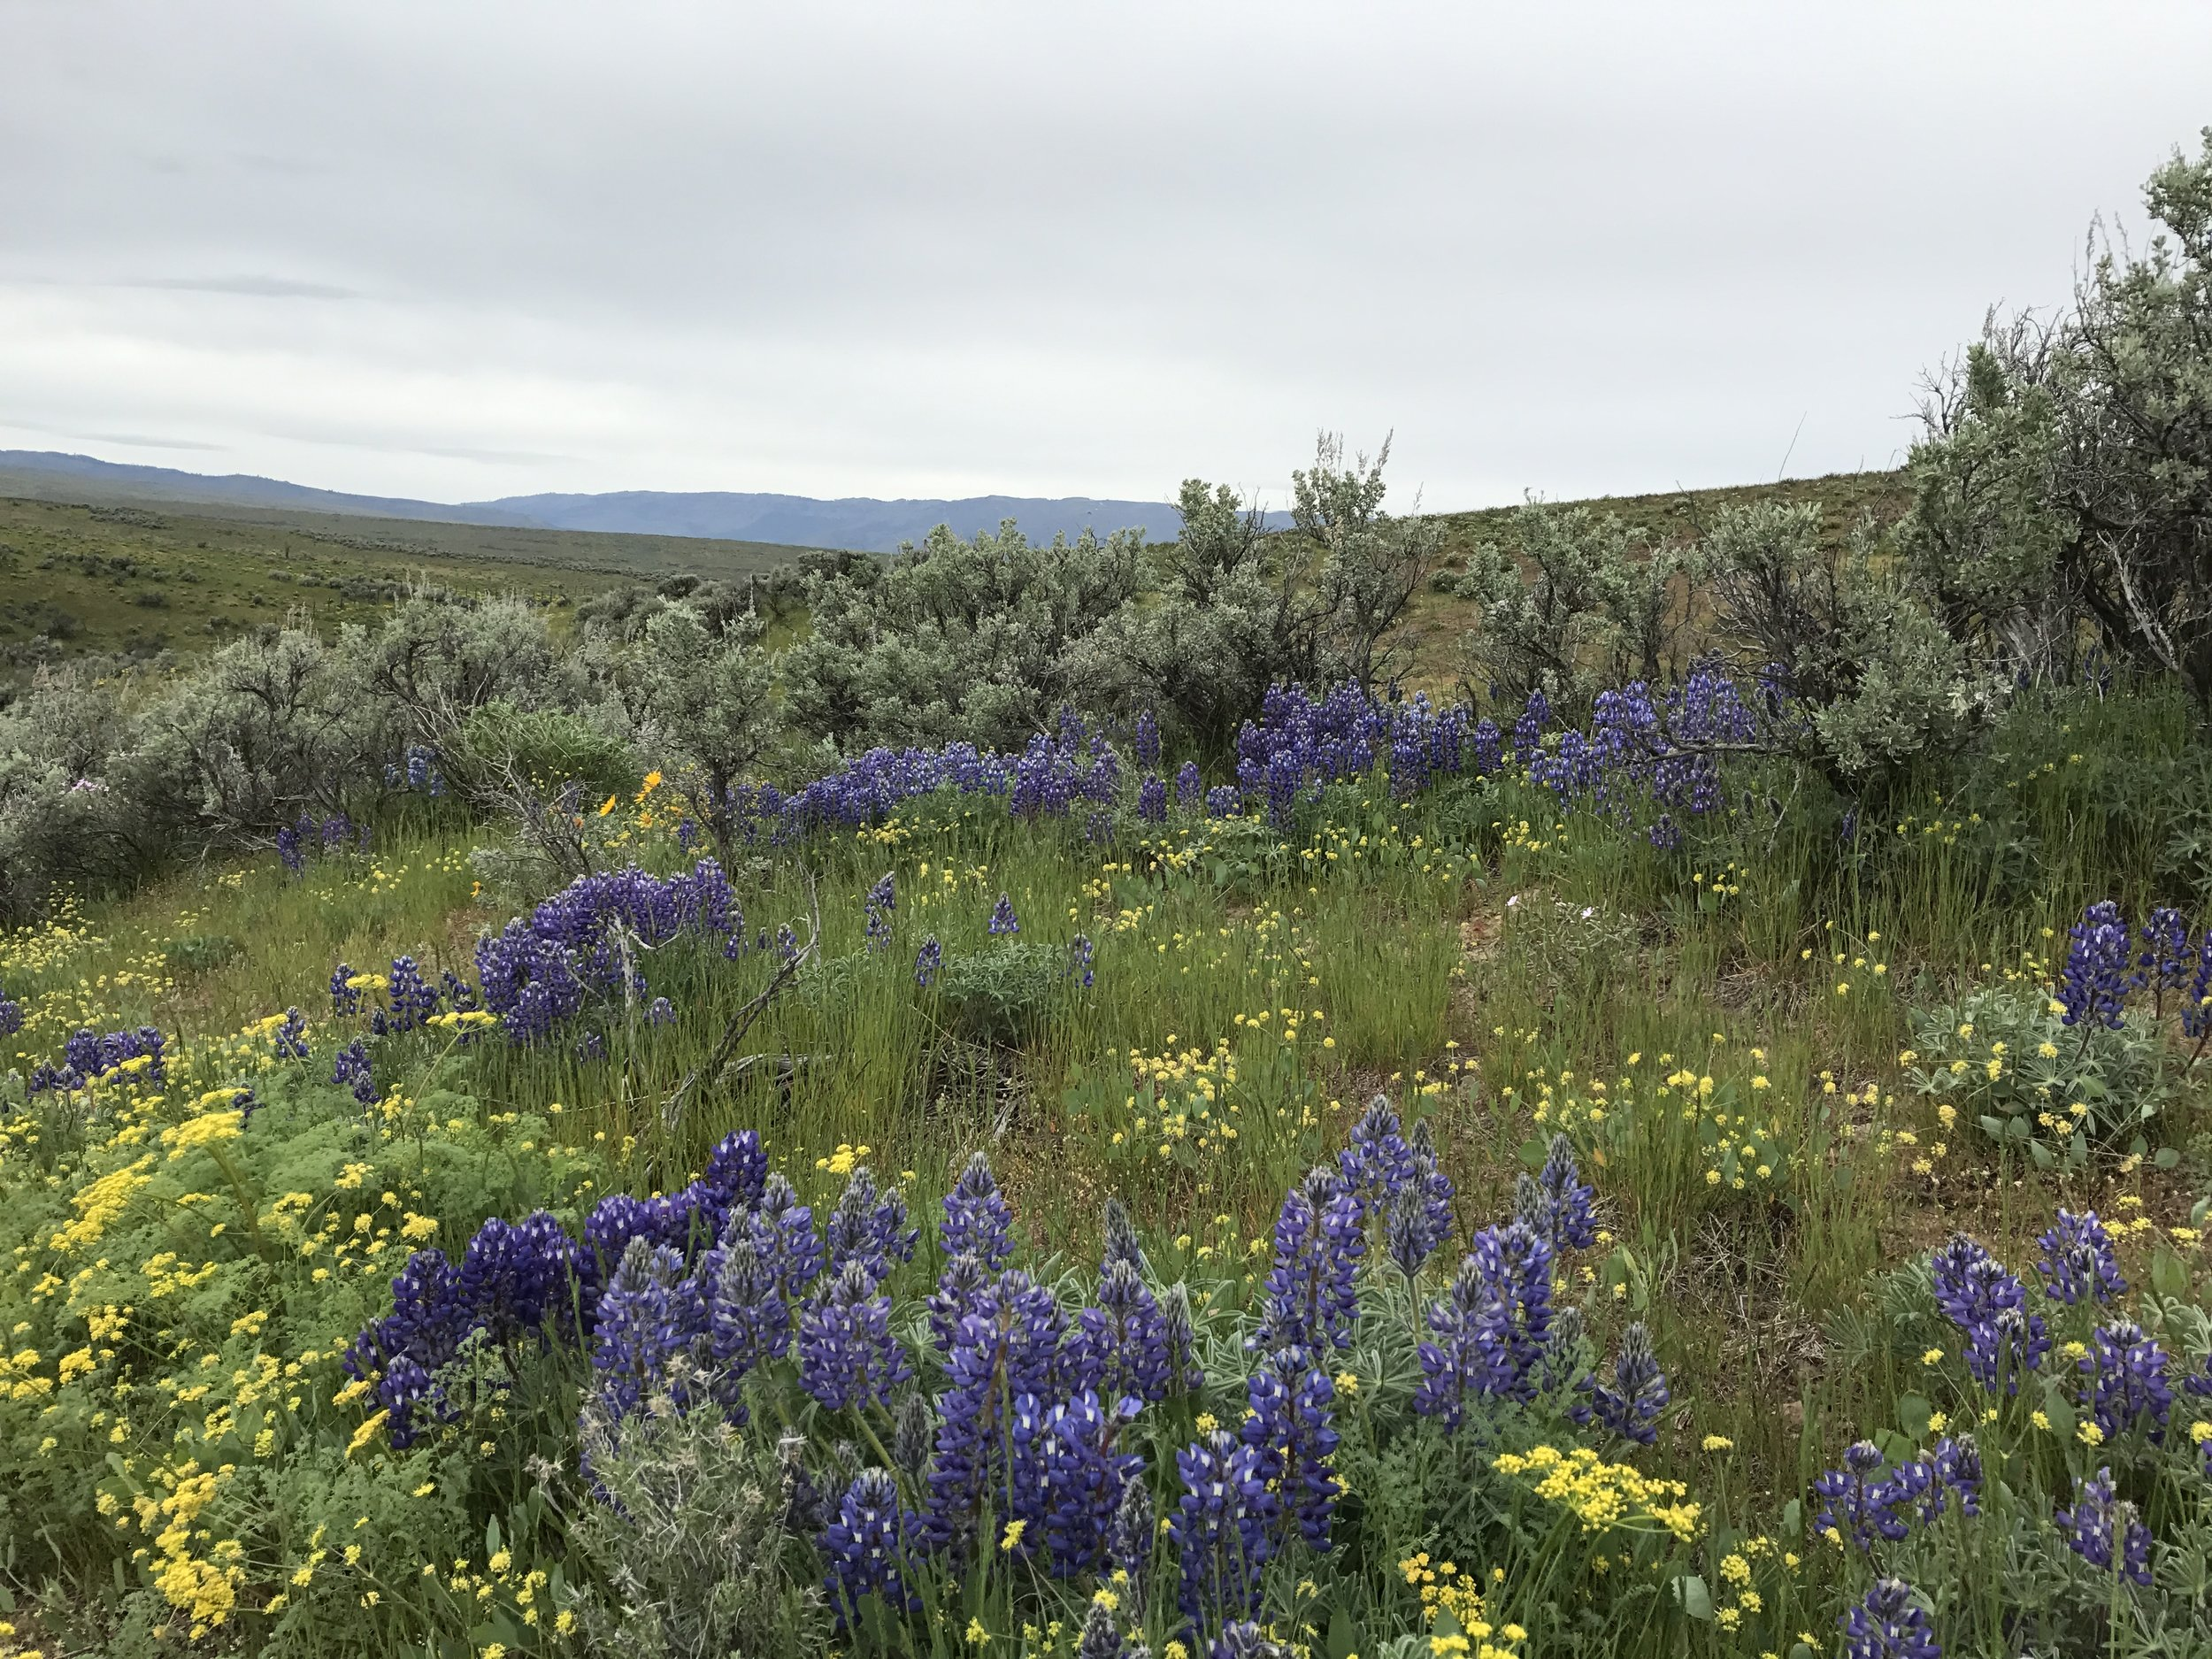 Vibrant wildflowers are among some 200 species of plants that thrive on the sagebrush landscape. Photo by Cluny McCaffrey/ ECOSS